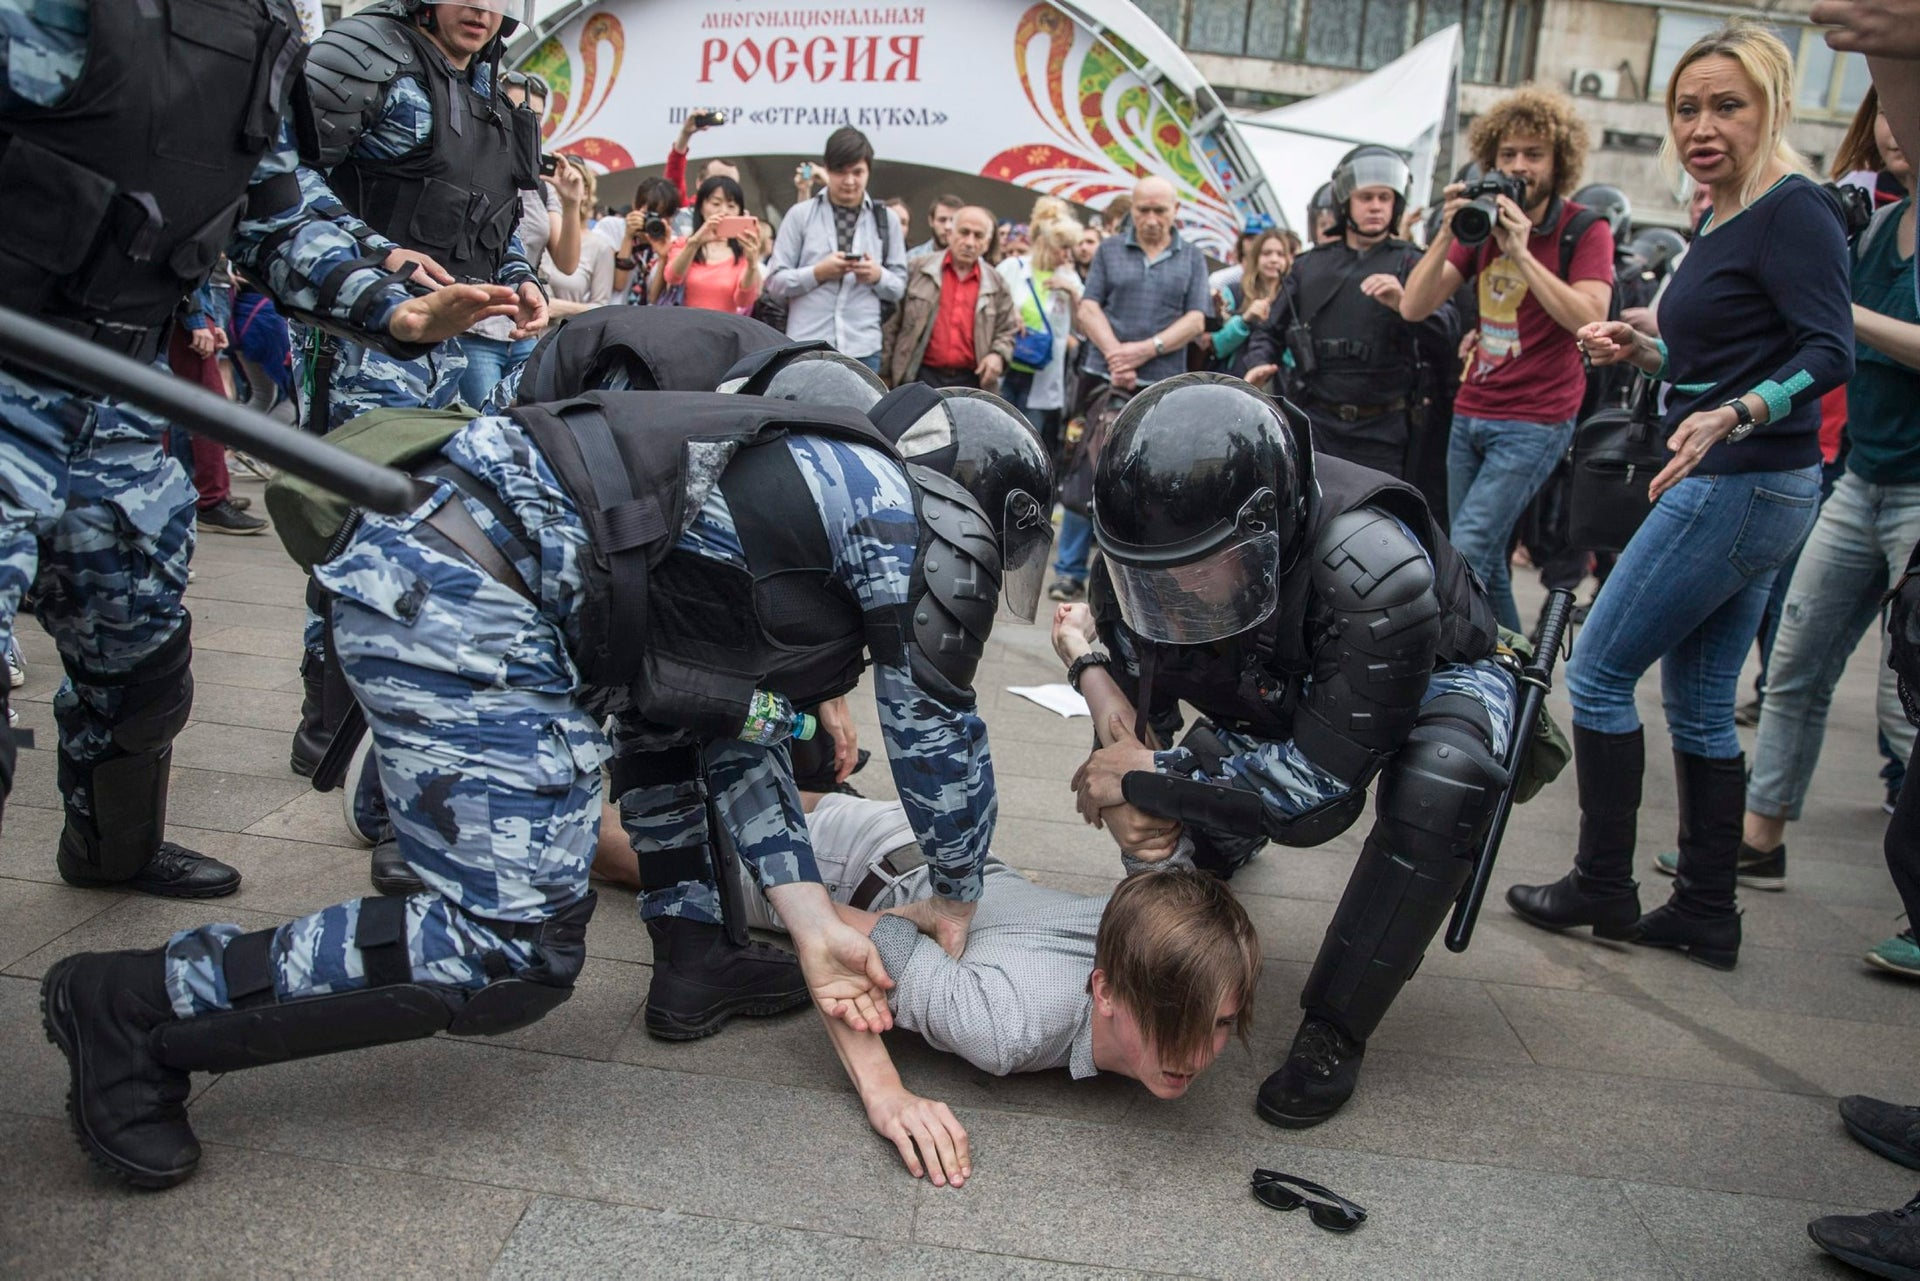 Police detain a protester In Moscow, Russia, June 12, 2017 during an anti-government demonstration called by Alexei Navalny, the the Kremlin's most visible opponent.